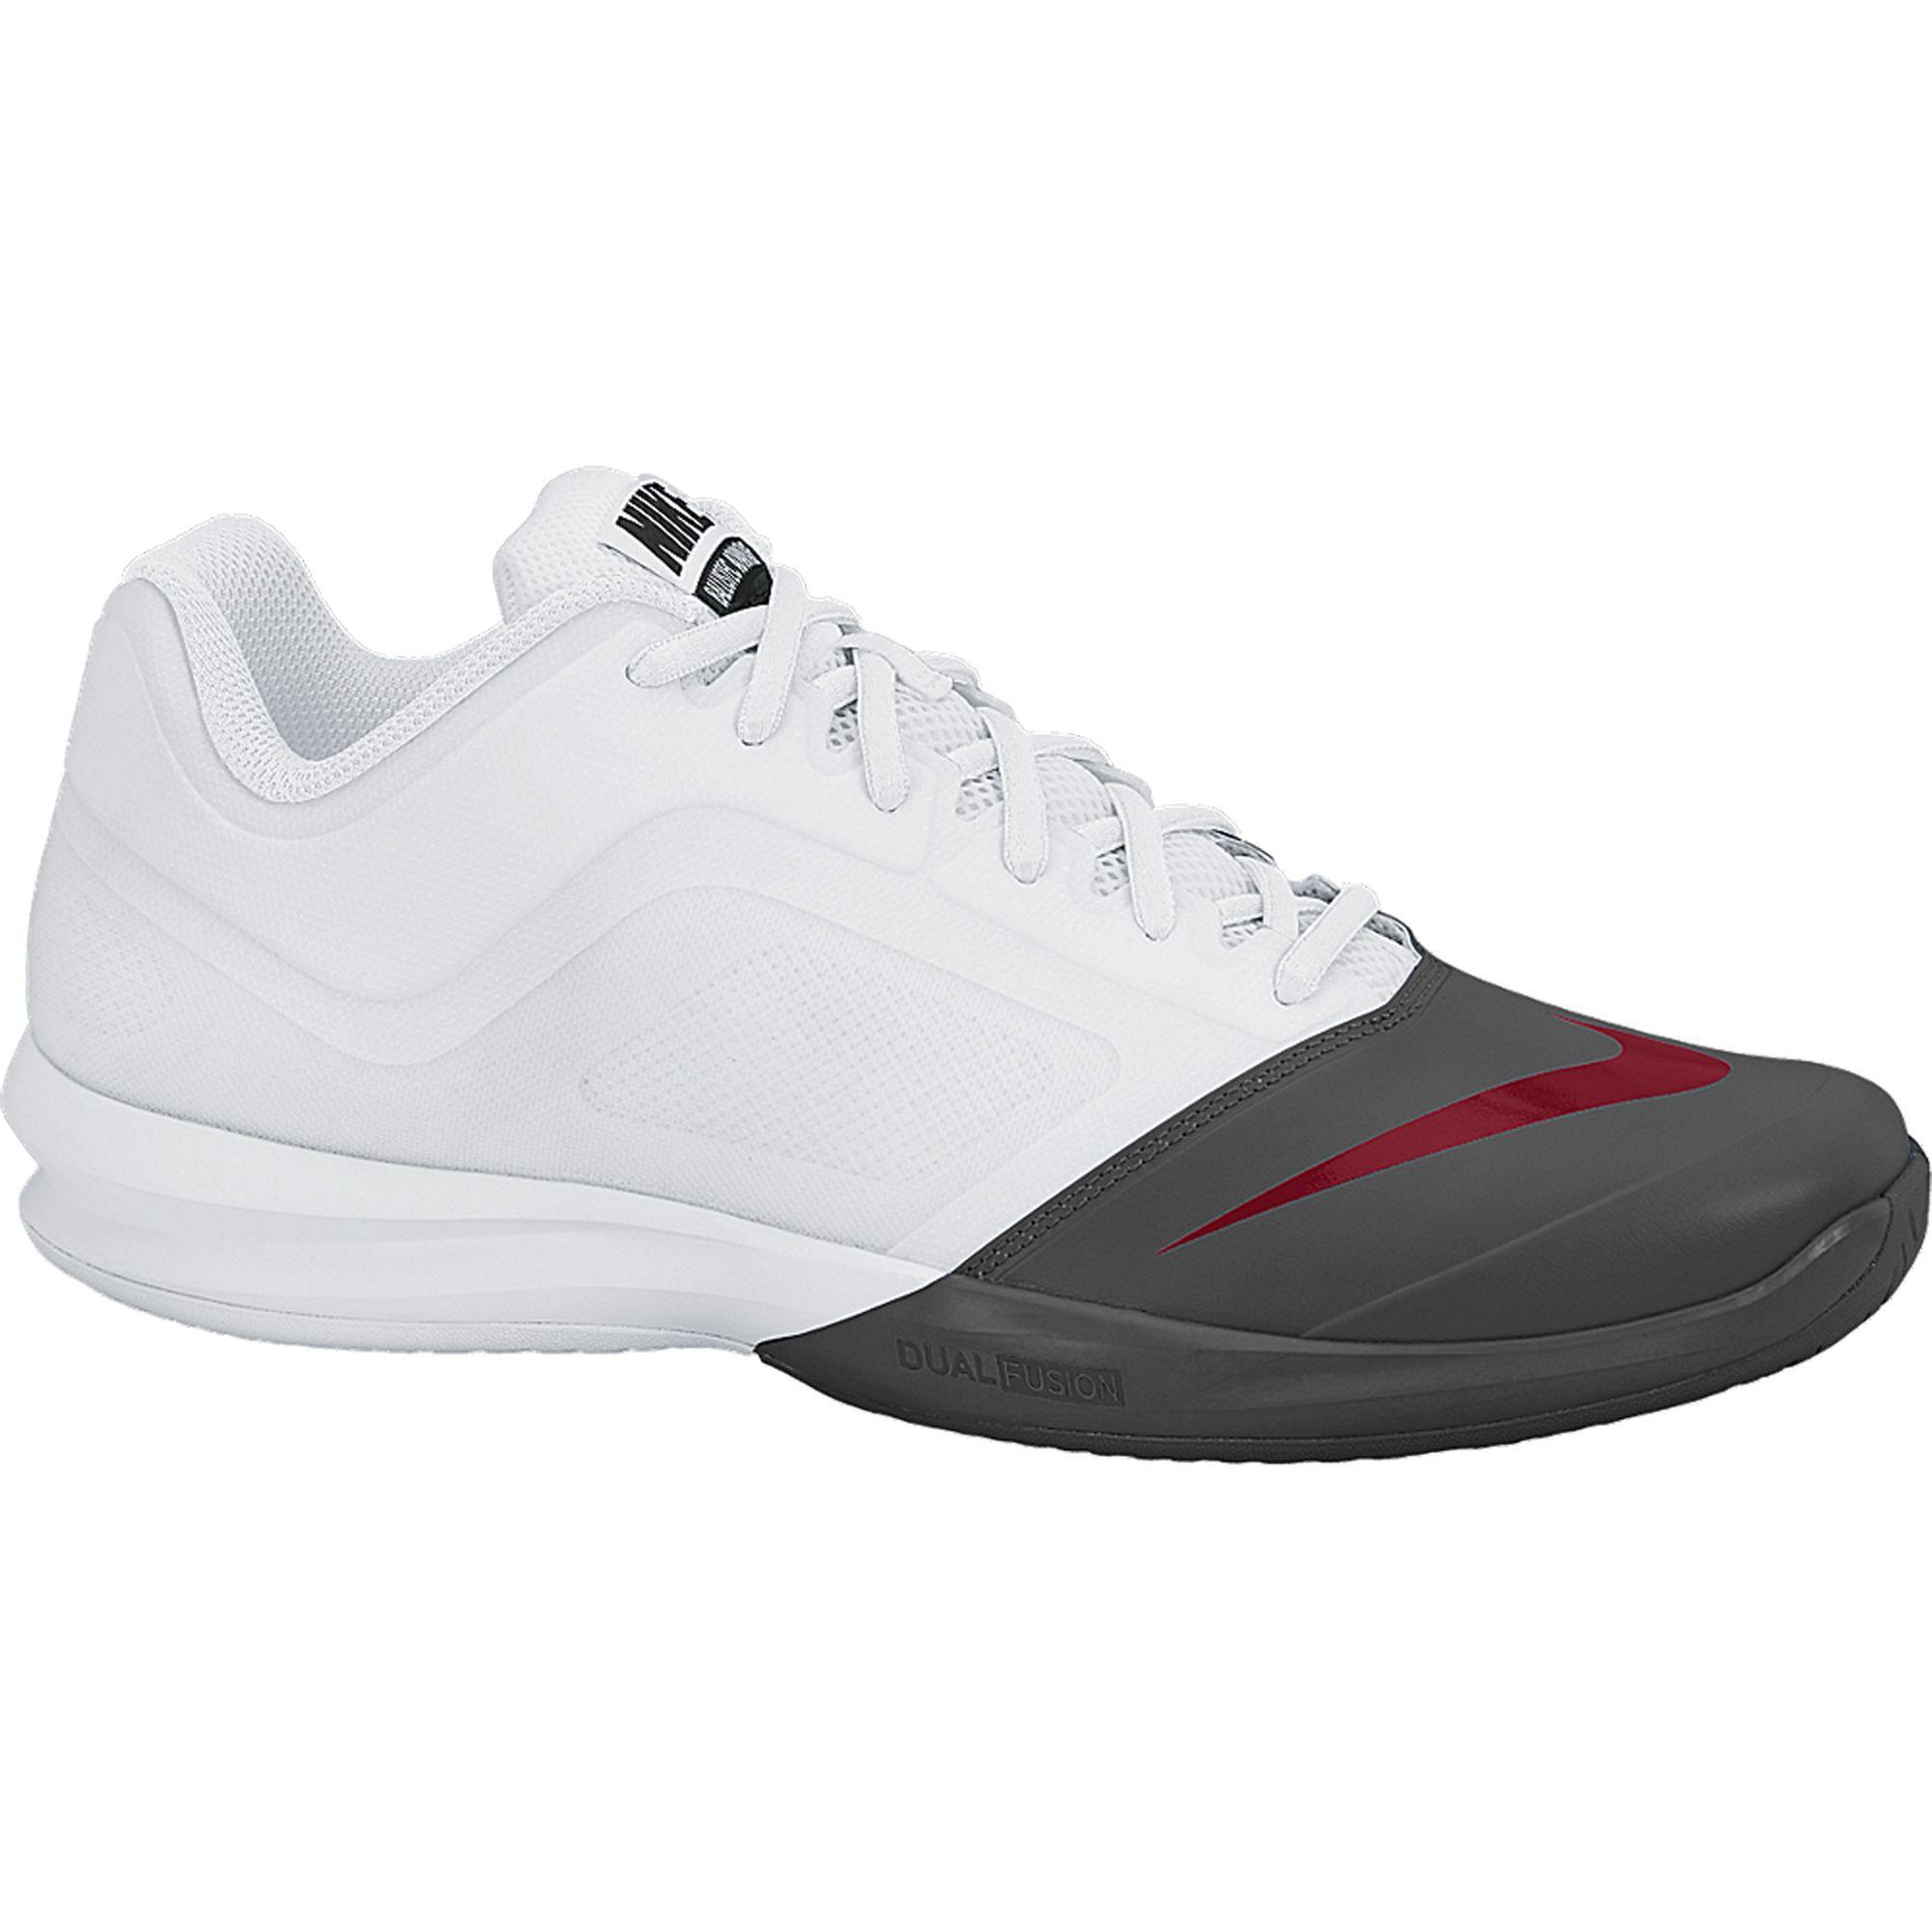 Nike Mens Dual Fusion Ballistec Advantage Tennis Shoes ...